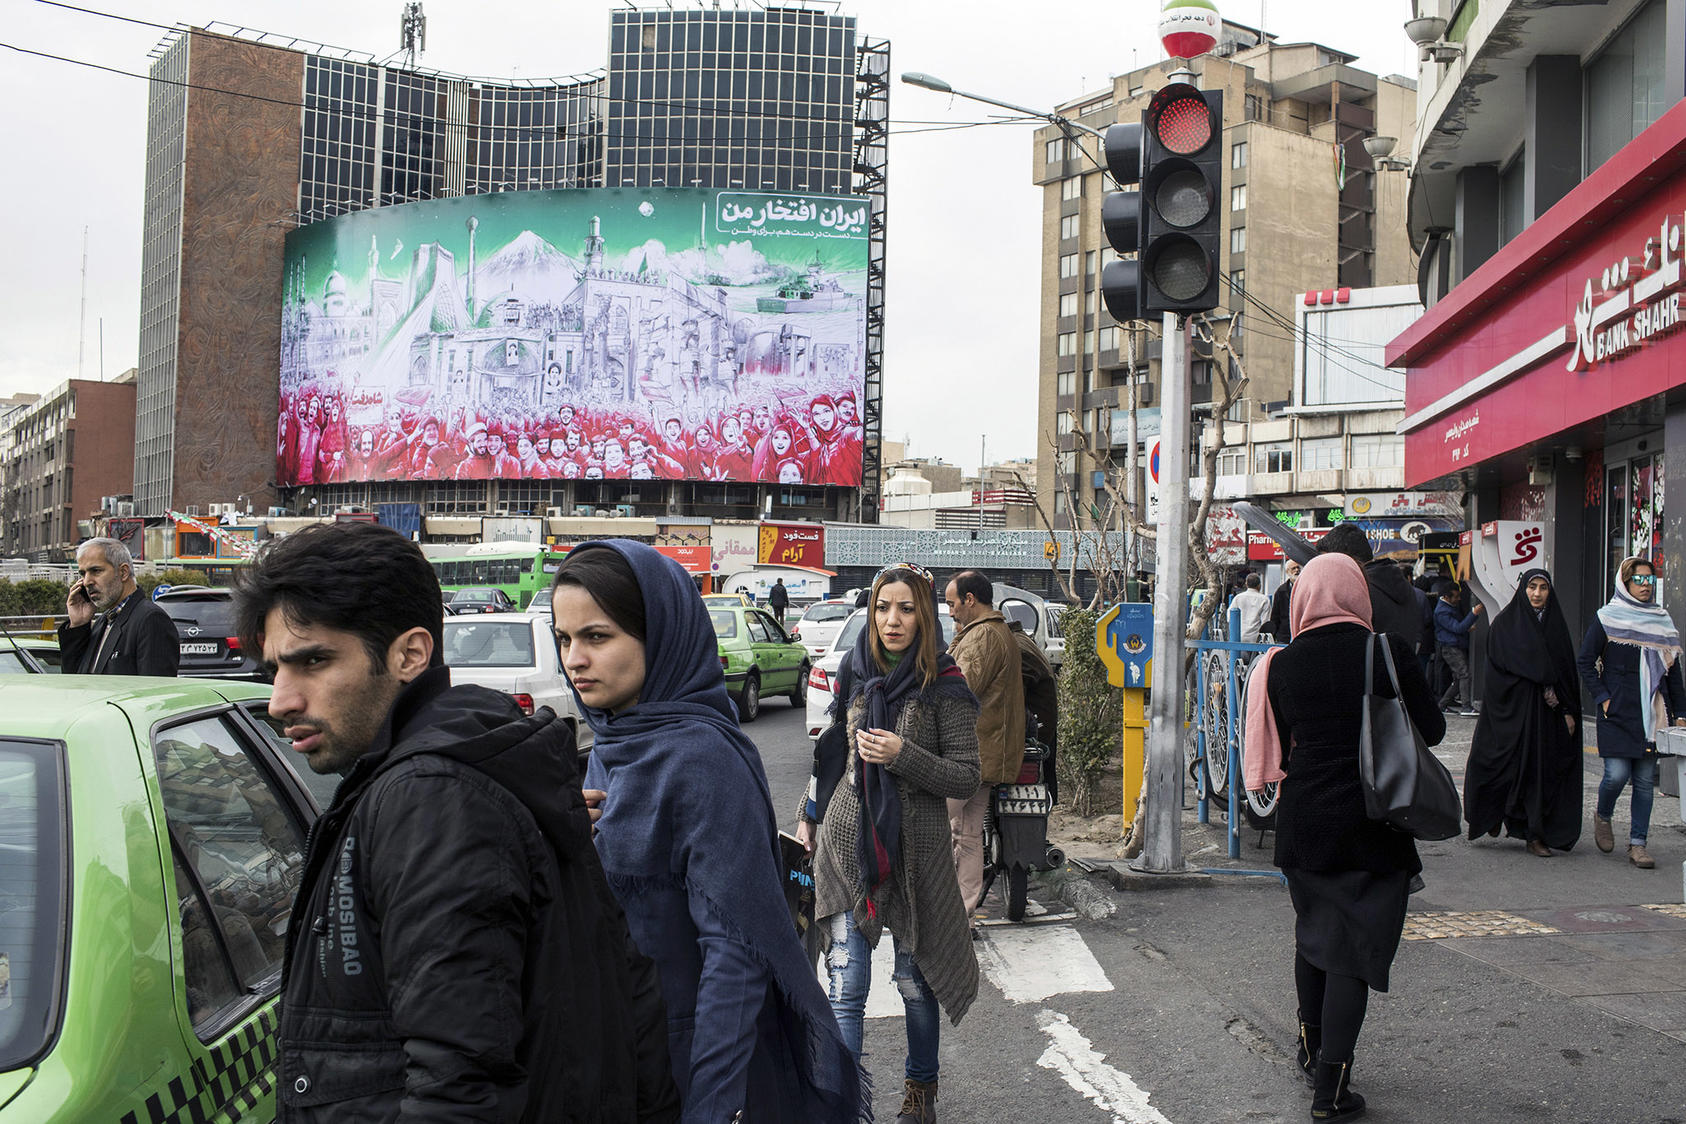 Iranians negotiate Tehran's traffic in February beneath a mural depicting the 1979 Islamic Revolution. U.S. sanctions, heightened this week, aim to pressure Iran's government into making broad foreign policy changes. (Arash Khamooshi/The New York Times)